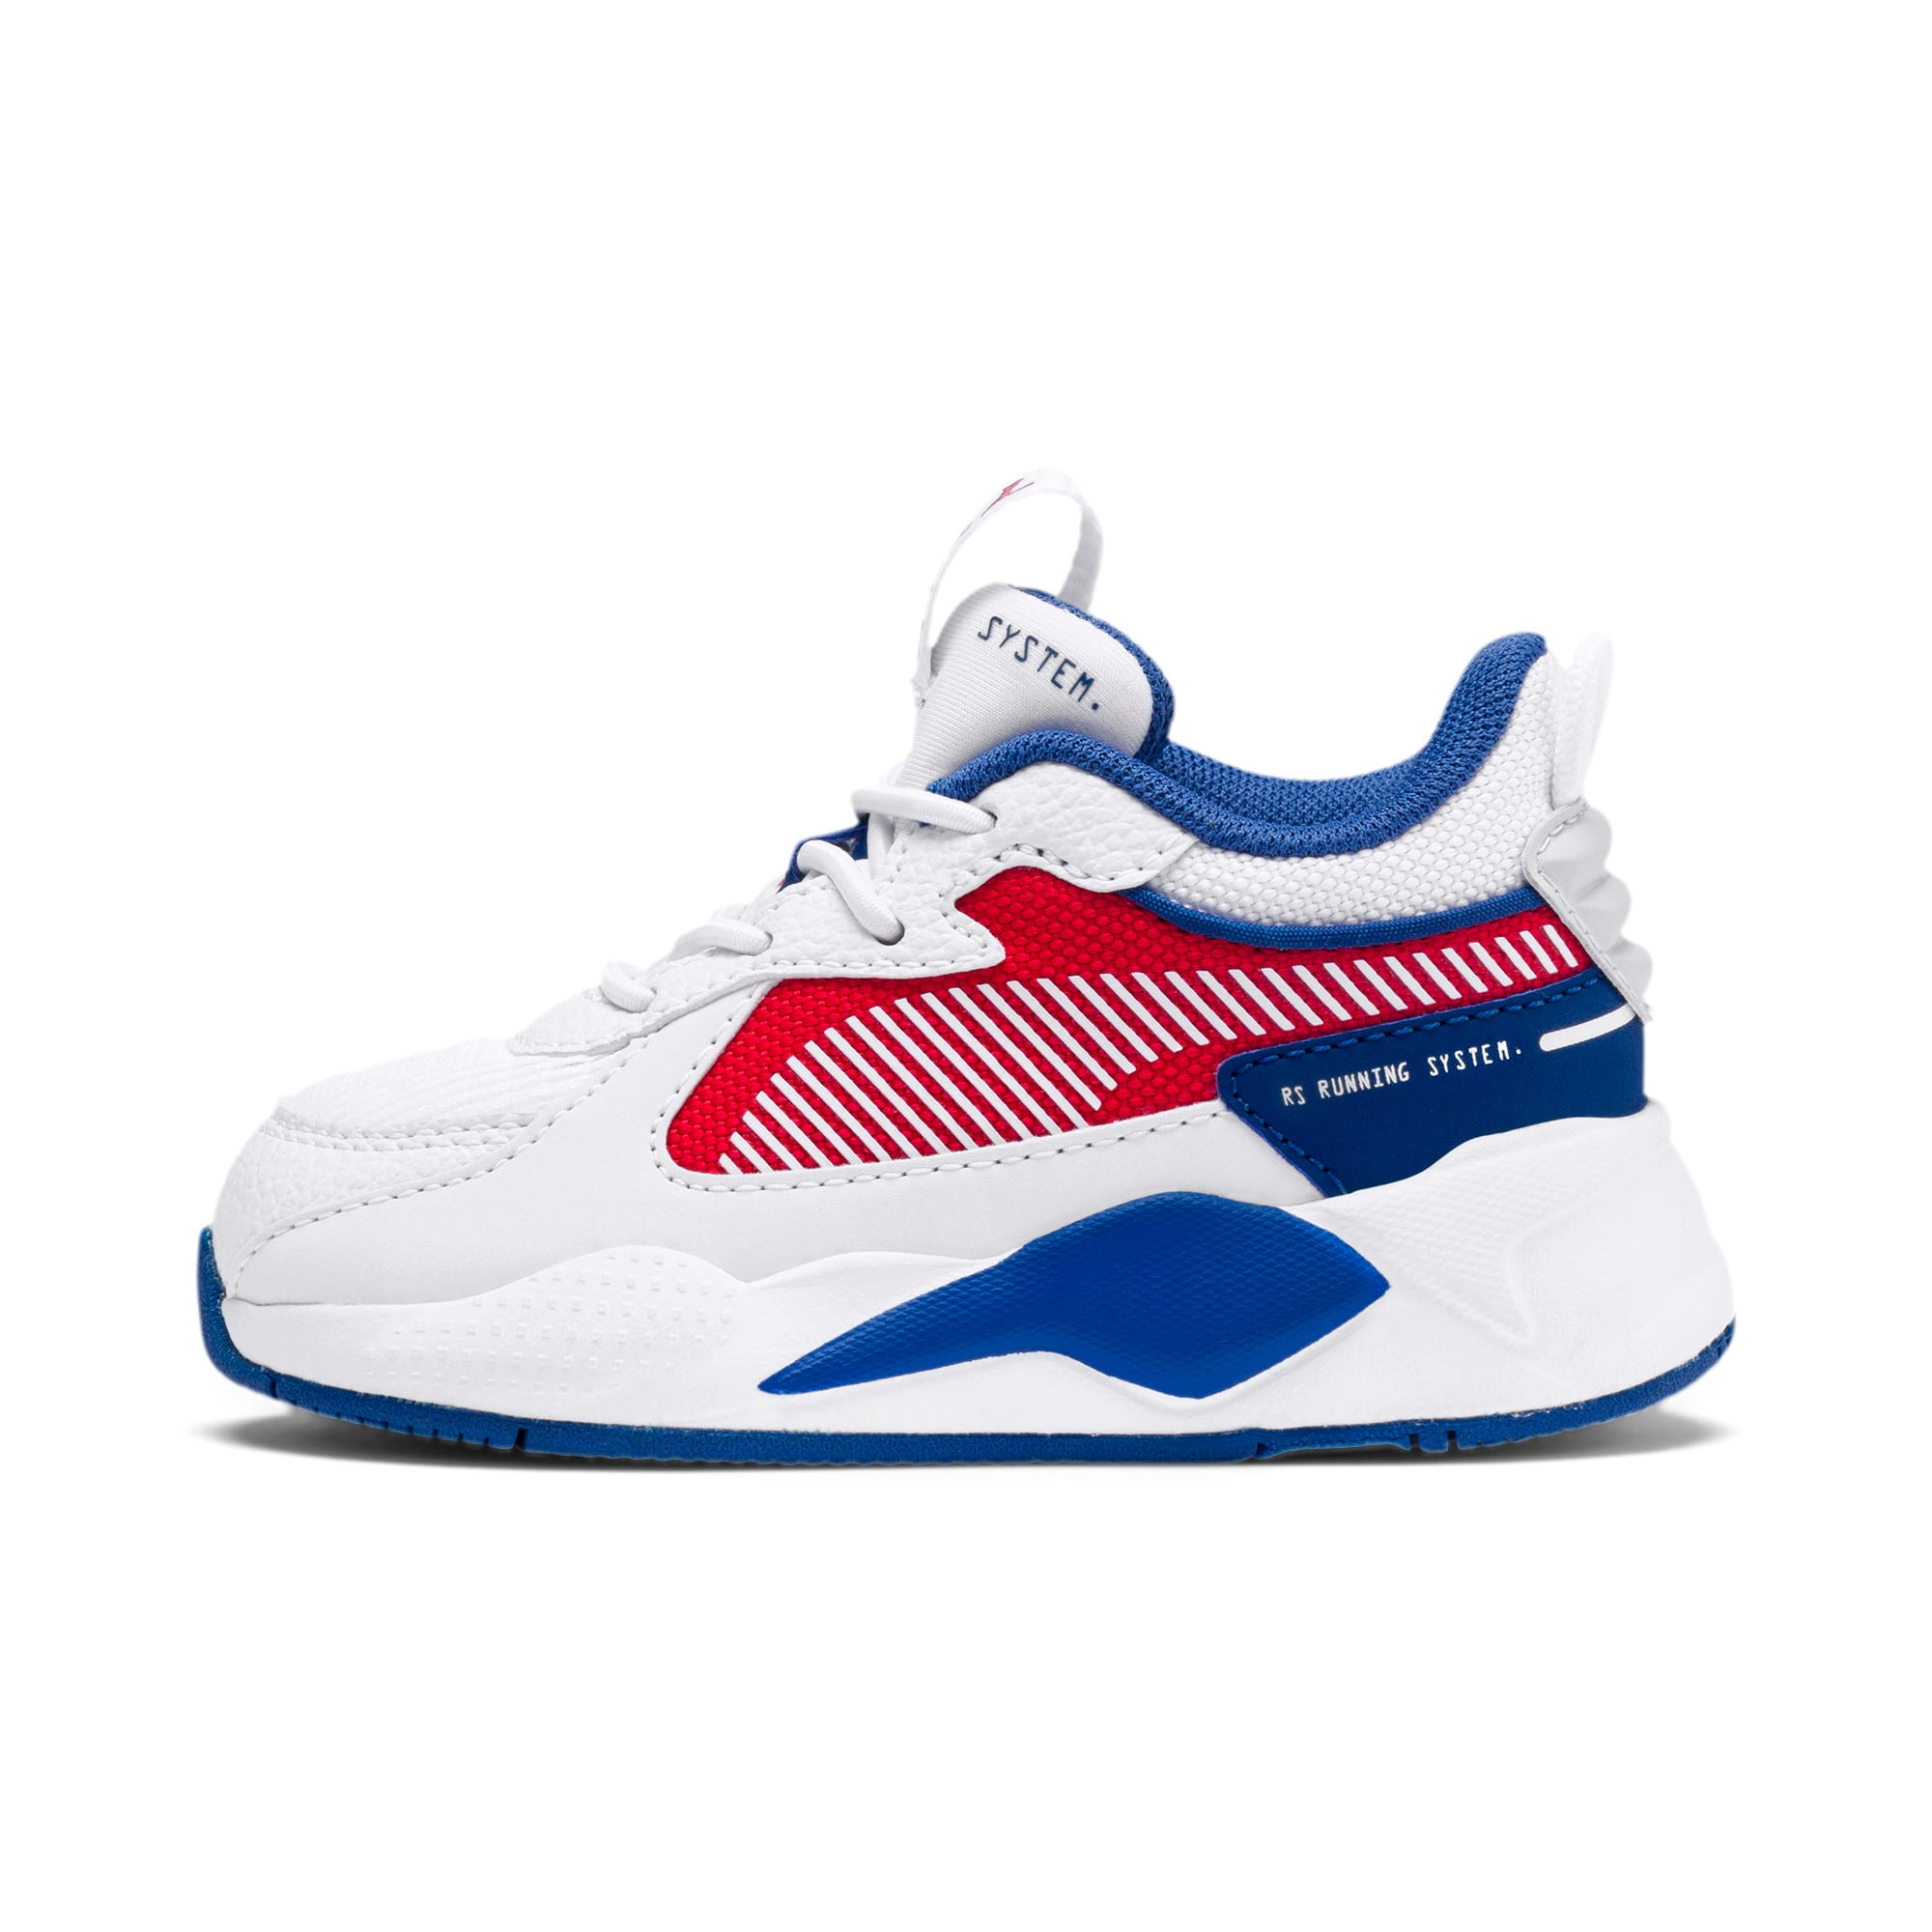 Thumbnail 1 of RS-X Hard Drive AC Toddler Shoes, Puma White-High Risk Red, medium